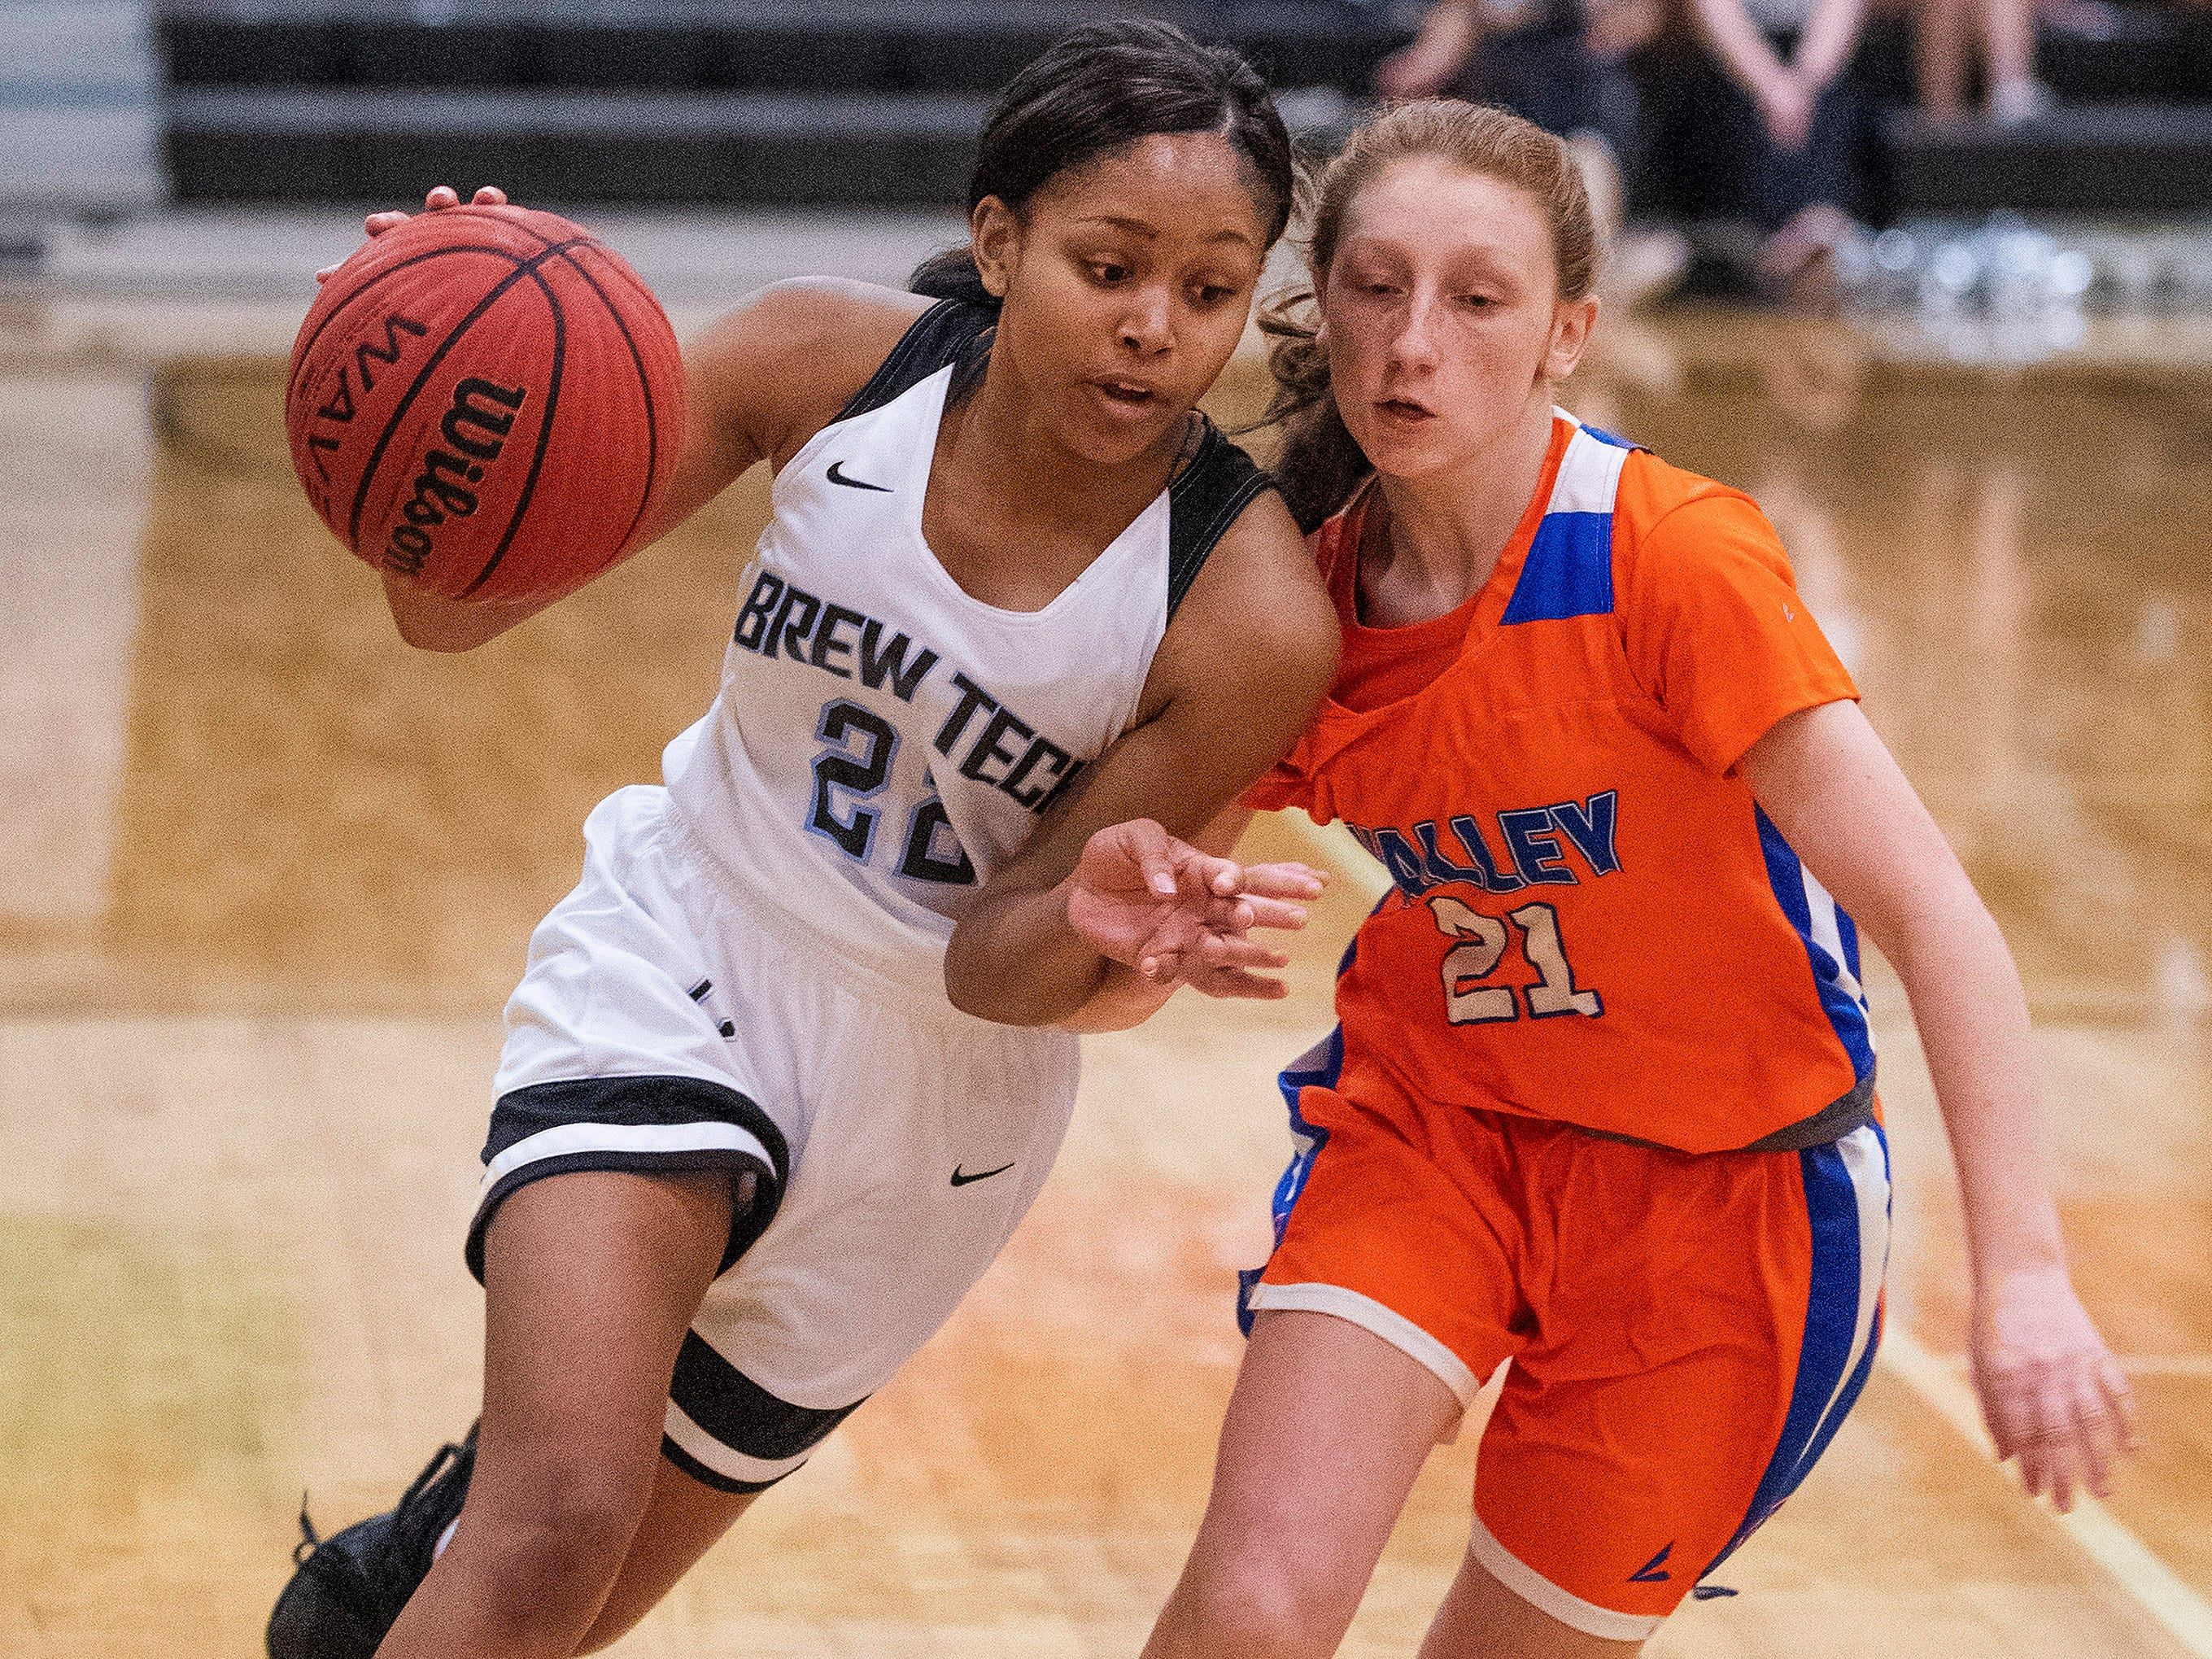 Brewbaker Tech's Curtise Forte' (22) drives against Valley's Madison Chandler (21) at the BrewTech campus in Montgomery, Ala., on Thursday February 7, 2019.